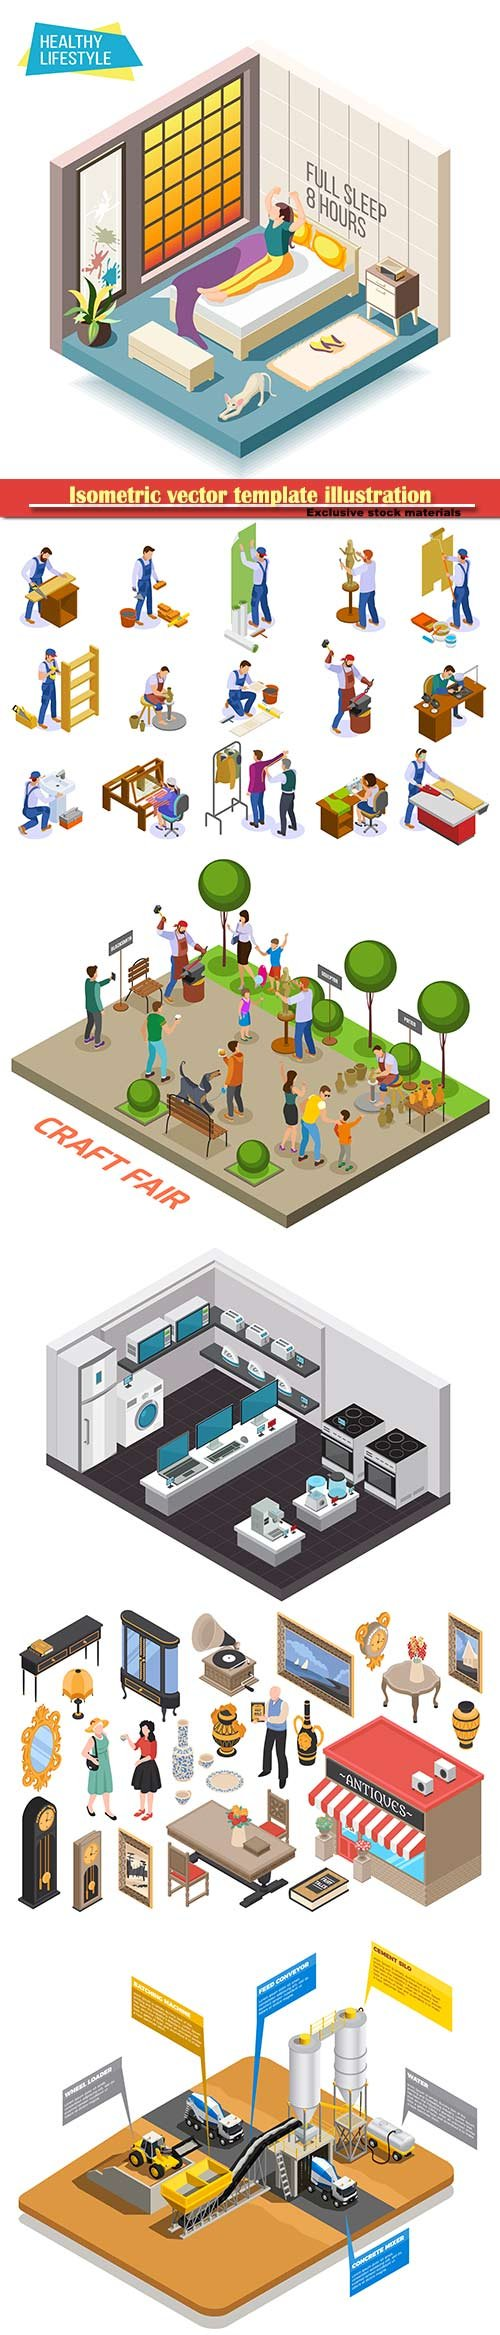 Isometric vector template illustration # 35